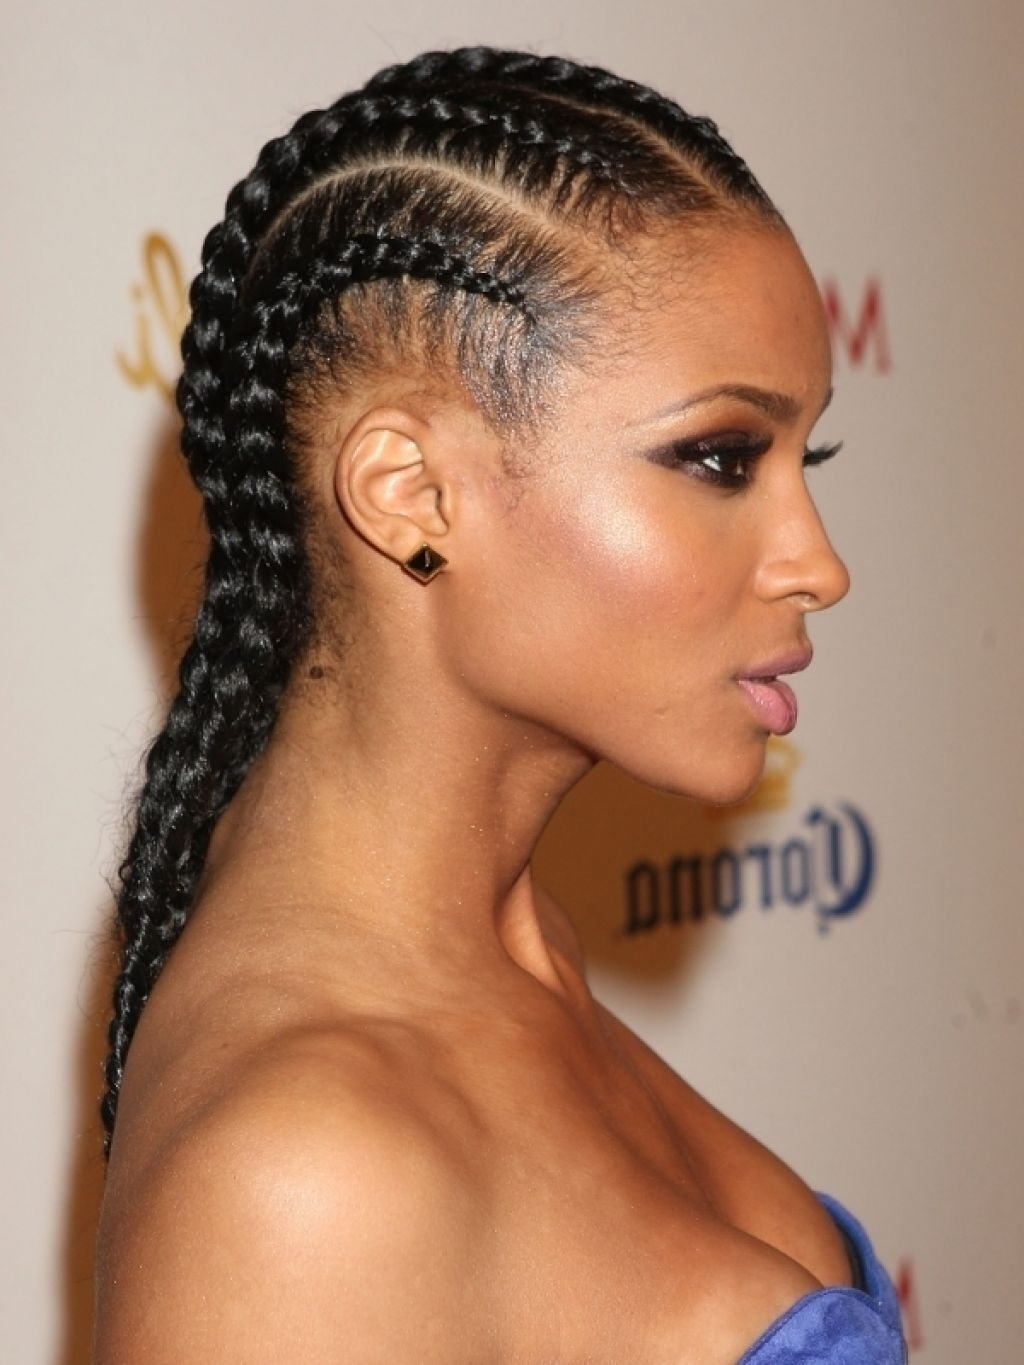 Braids Hairstyles Southafrican New Hairstyles In South Africa South With Well Known South African Braided Hairstyles (View 11 of 15)